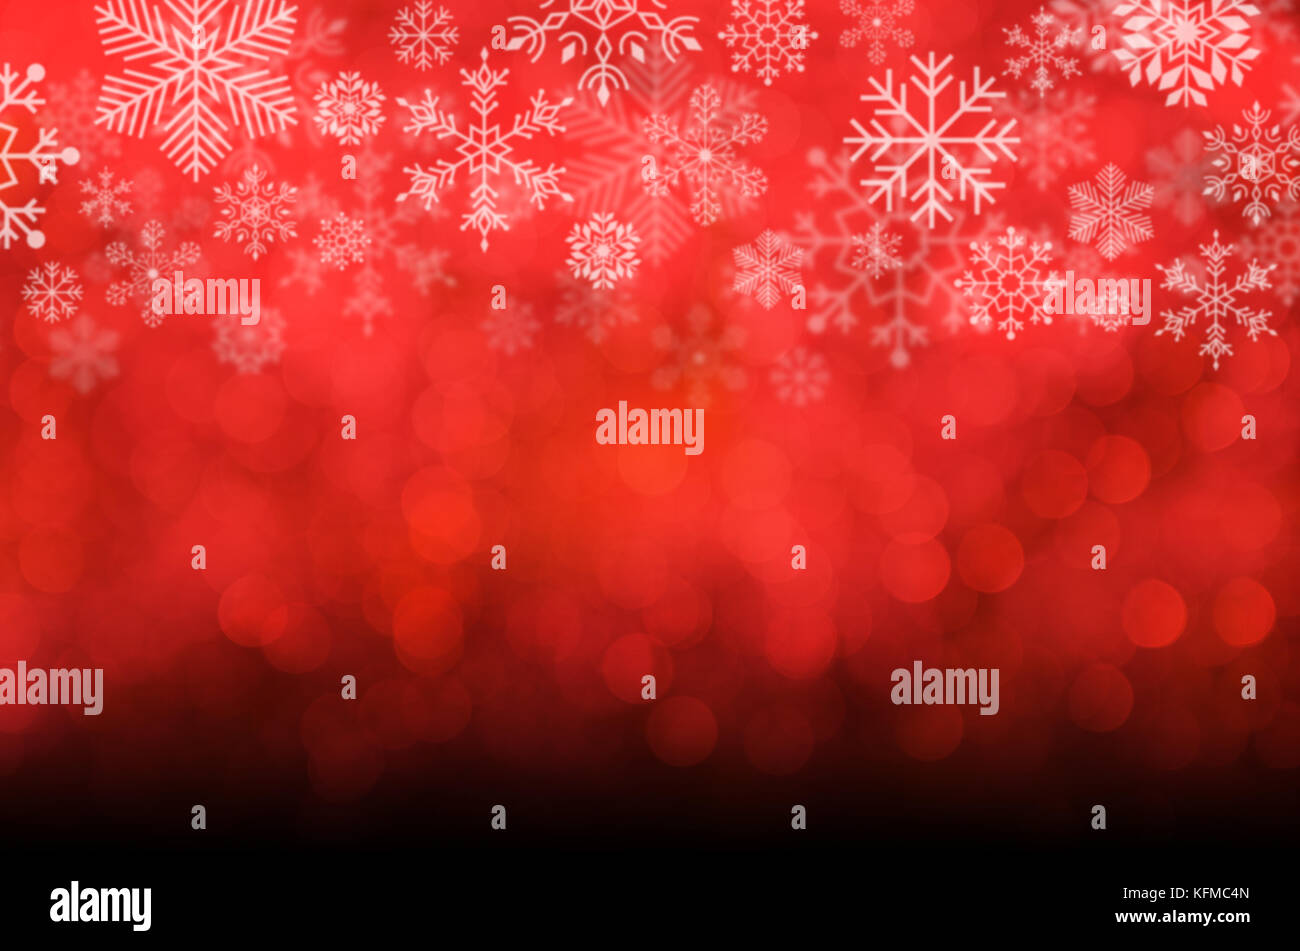 christmas and new year theme background red blurred abstract background with snowflake